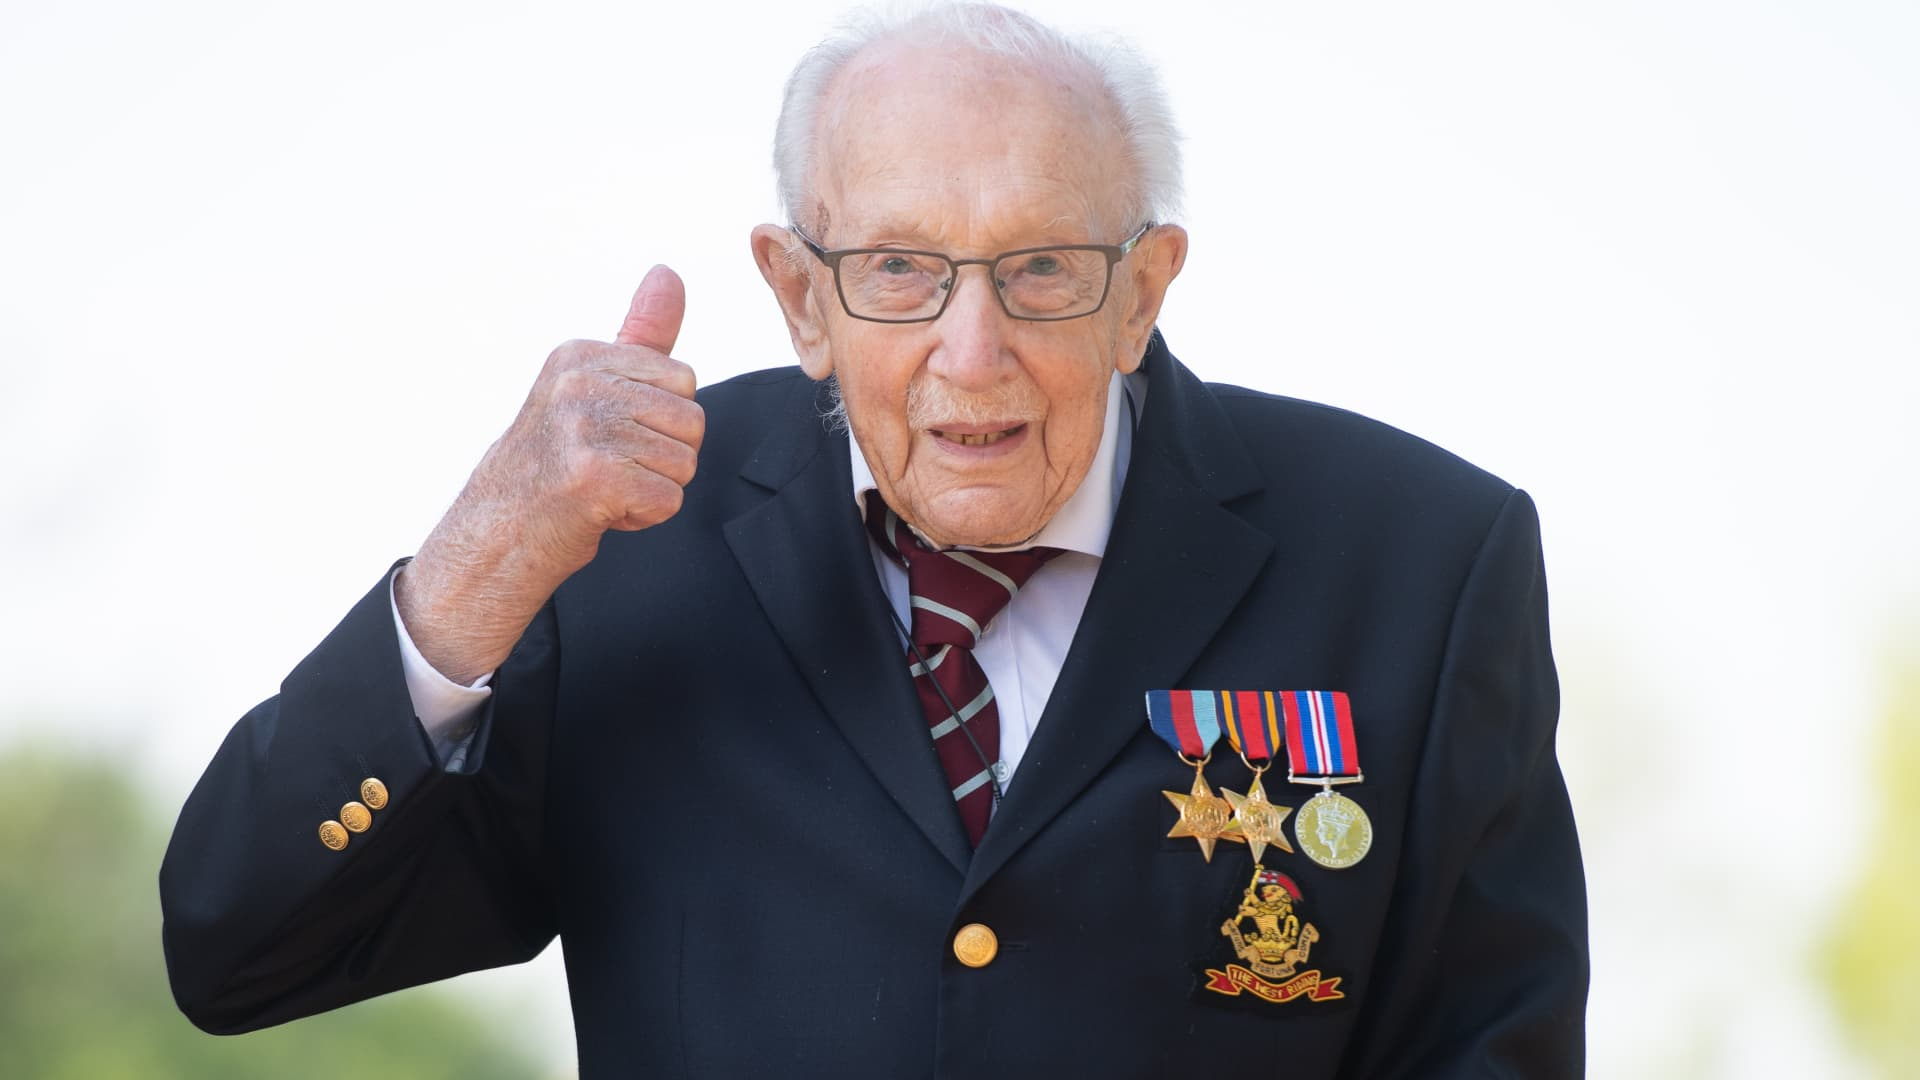 99-year-old war veteran Captain Tom Moore at his home in Marston Moretaine, Bedfordshire, April 16, 2020, after he achieved his goal of 100 laps of his garden - raising more than 12 million pounds for the NHS.